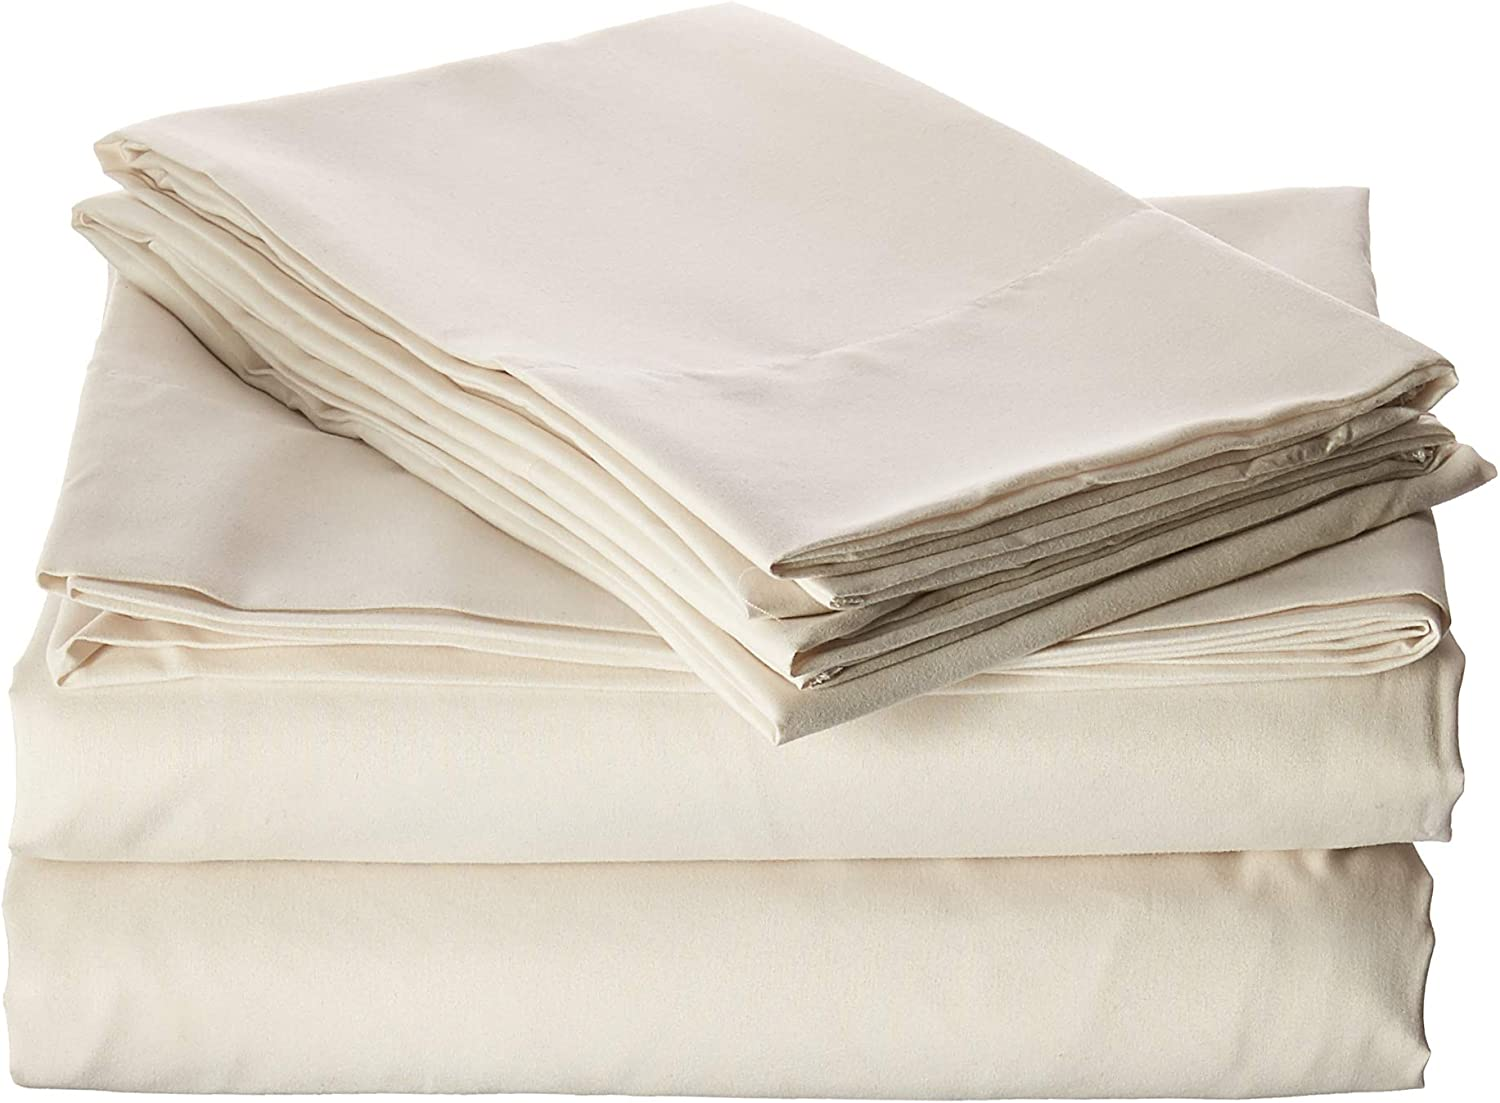 Truly Soft Sheet Sets for Everyday Use Ivory Queen Sheet